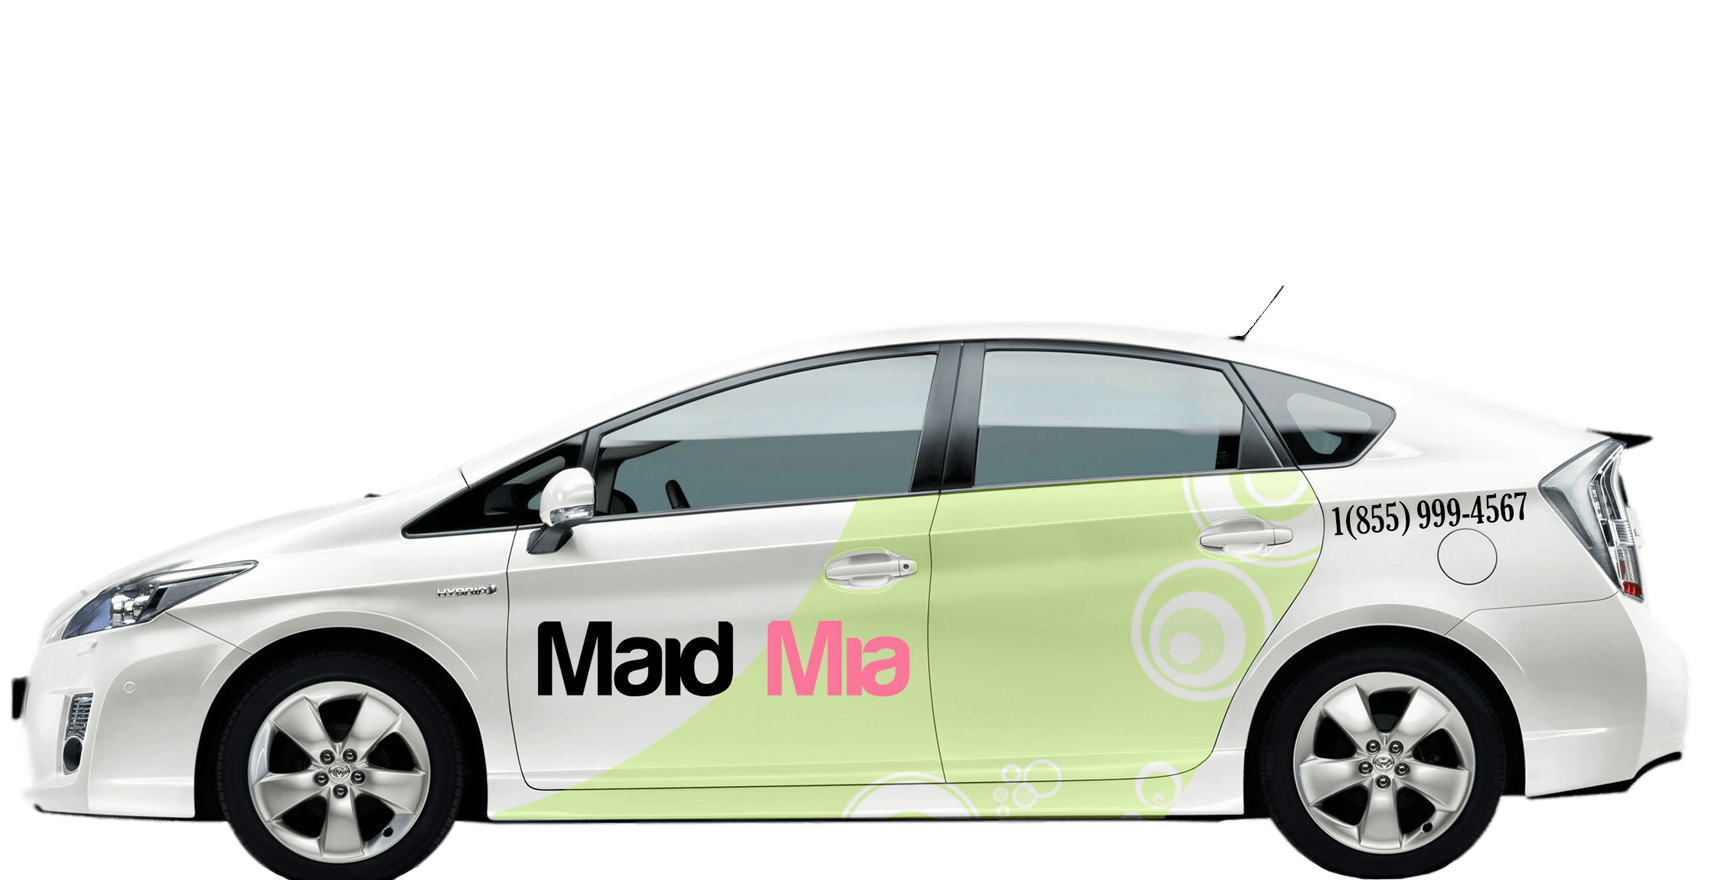 about us About Us maid mia prius car sticker bubble 1